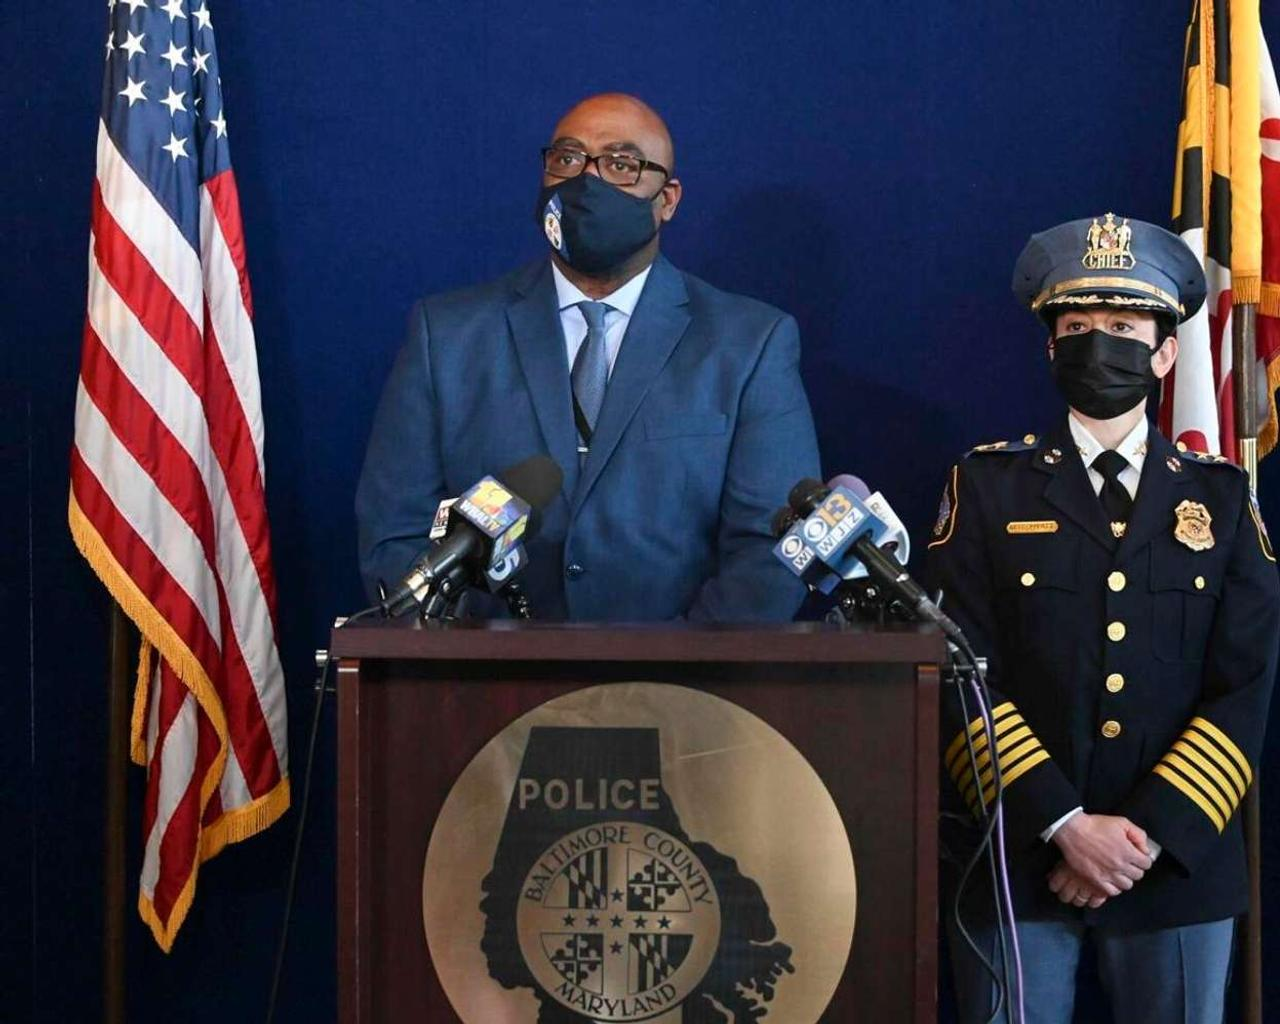 Baltimore County police 'don't know' why a man shot 5 people before committing suicide